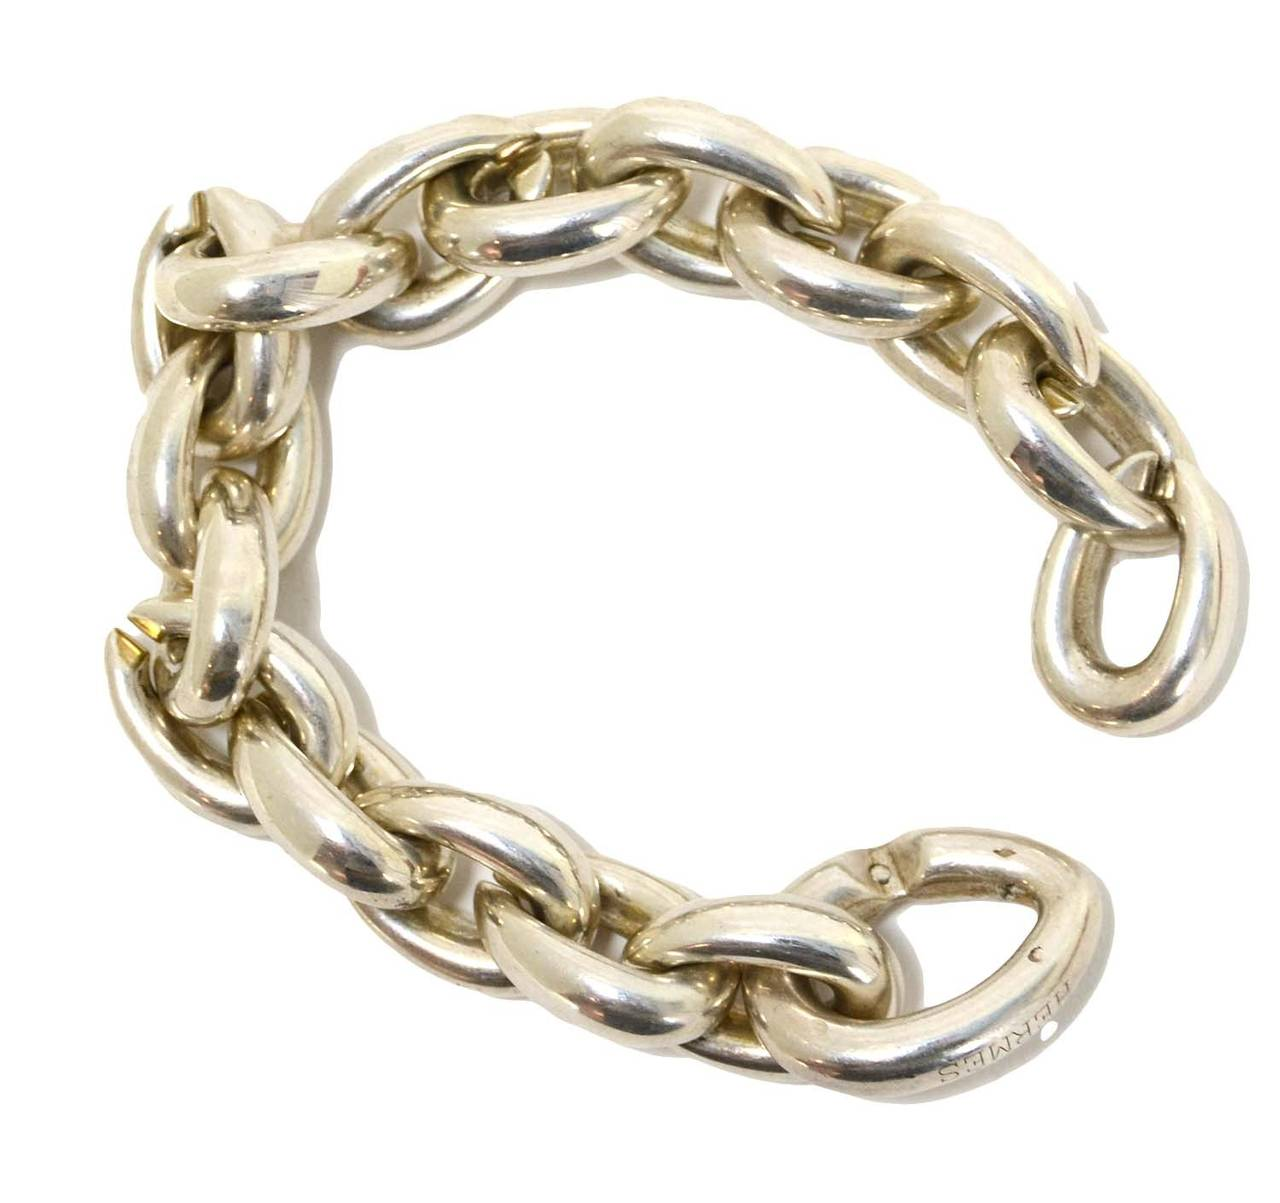 Features 16 links with one slightly bigger link that secures the bracelet